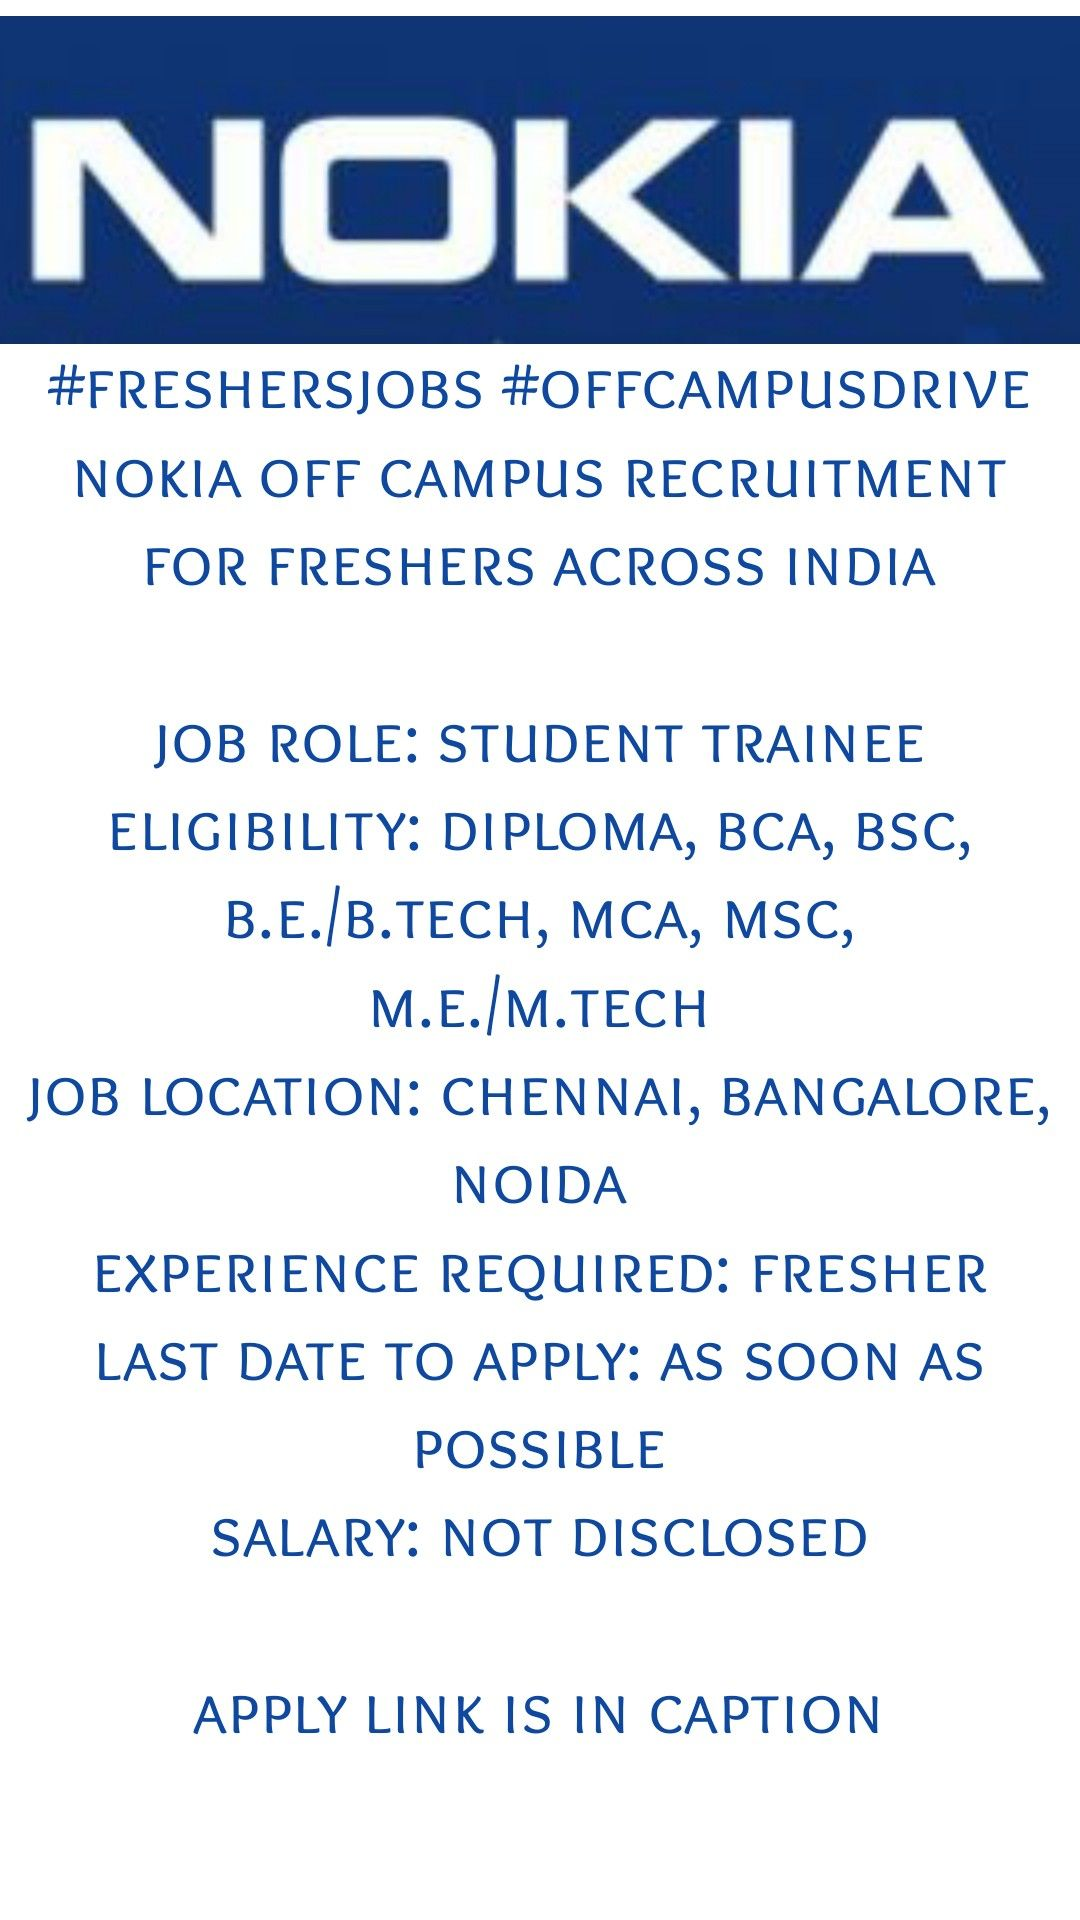 Nokia Off Campus Recruitment For Freshers in 2020 Time